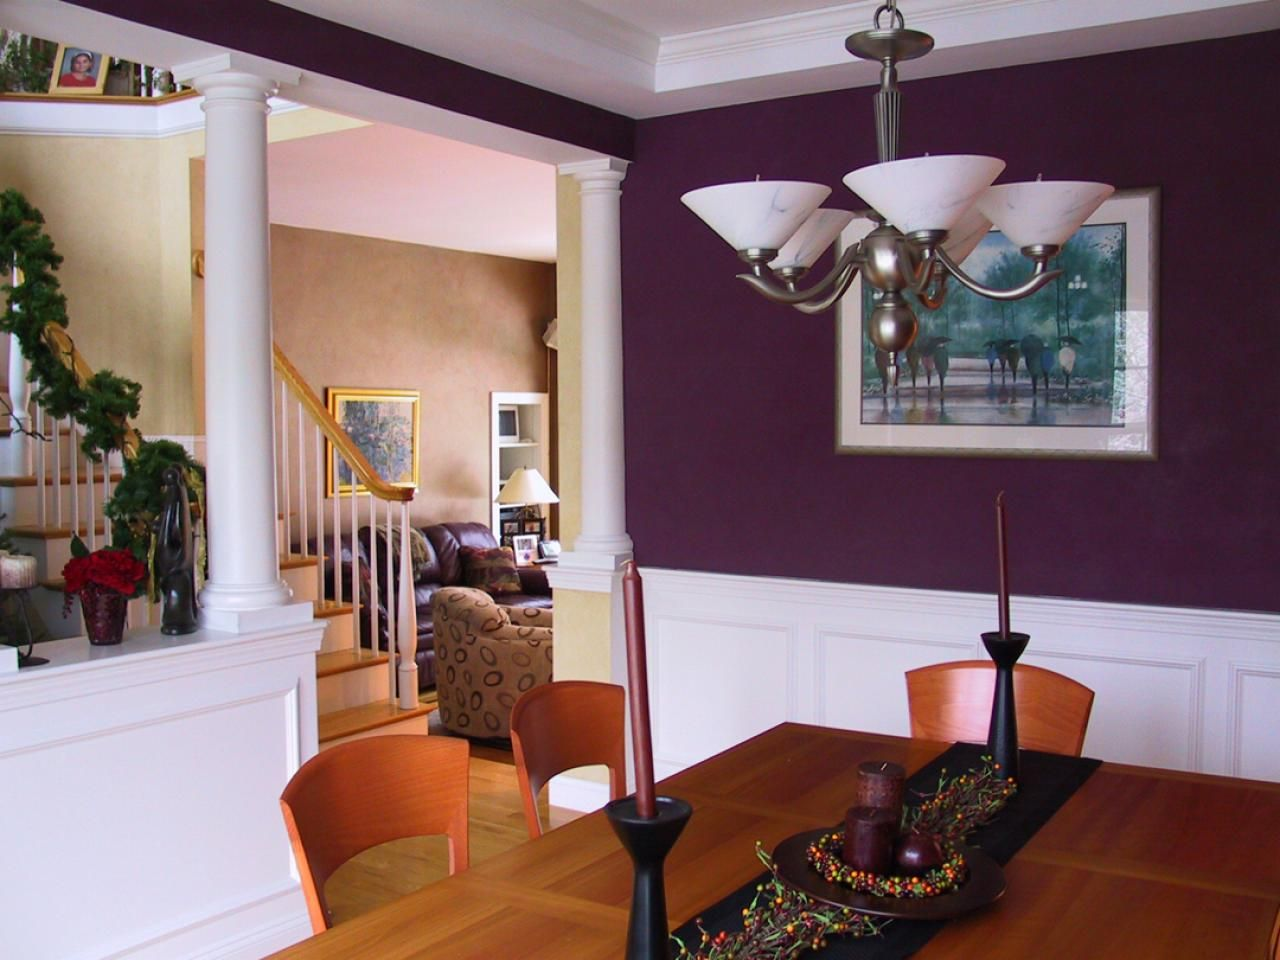 Connecting Rooms With Color | Dining room colors, Dining ...